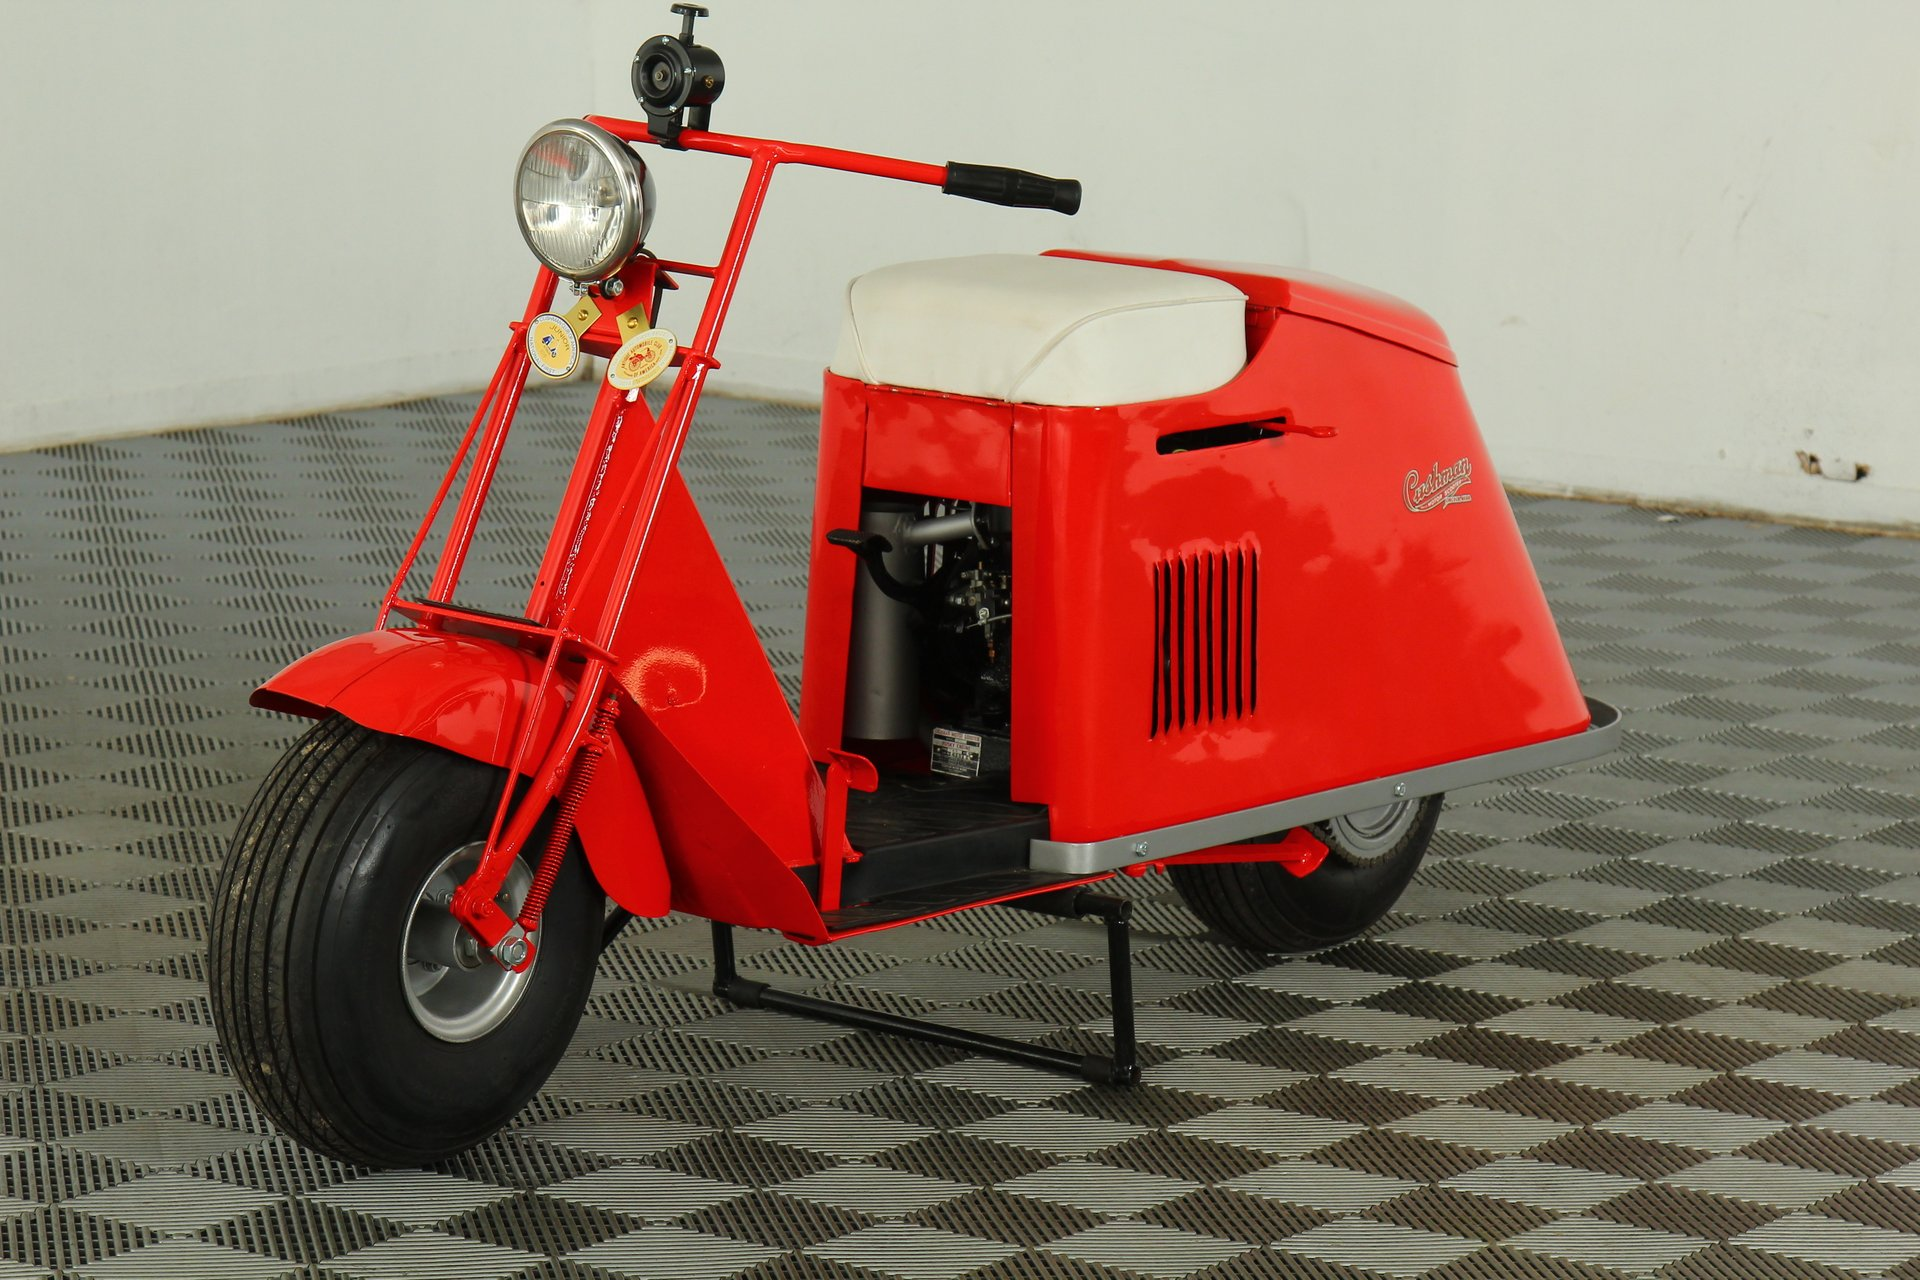 1946 cushman scooter